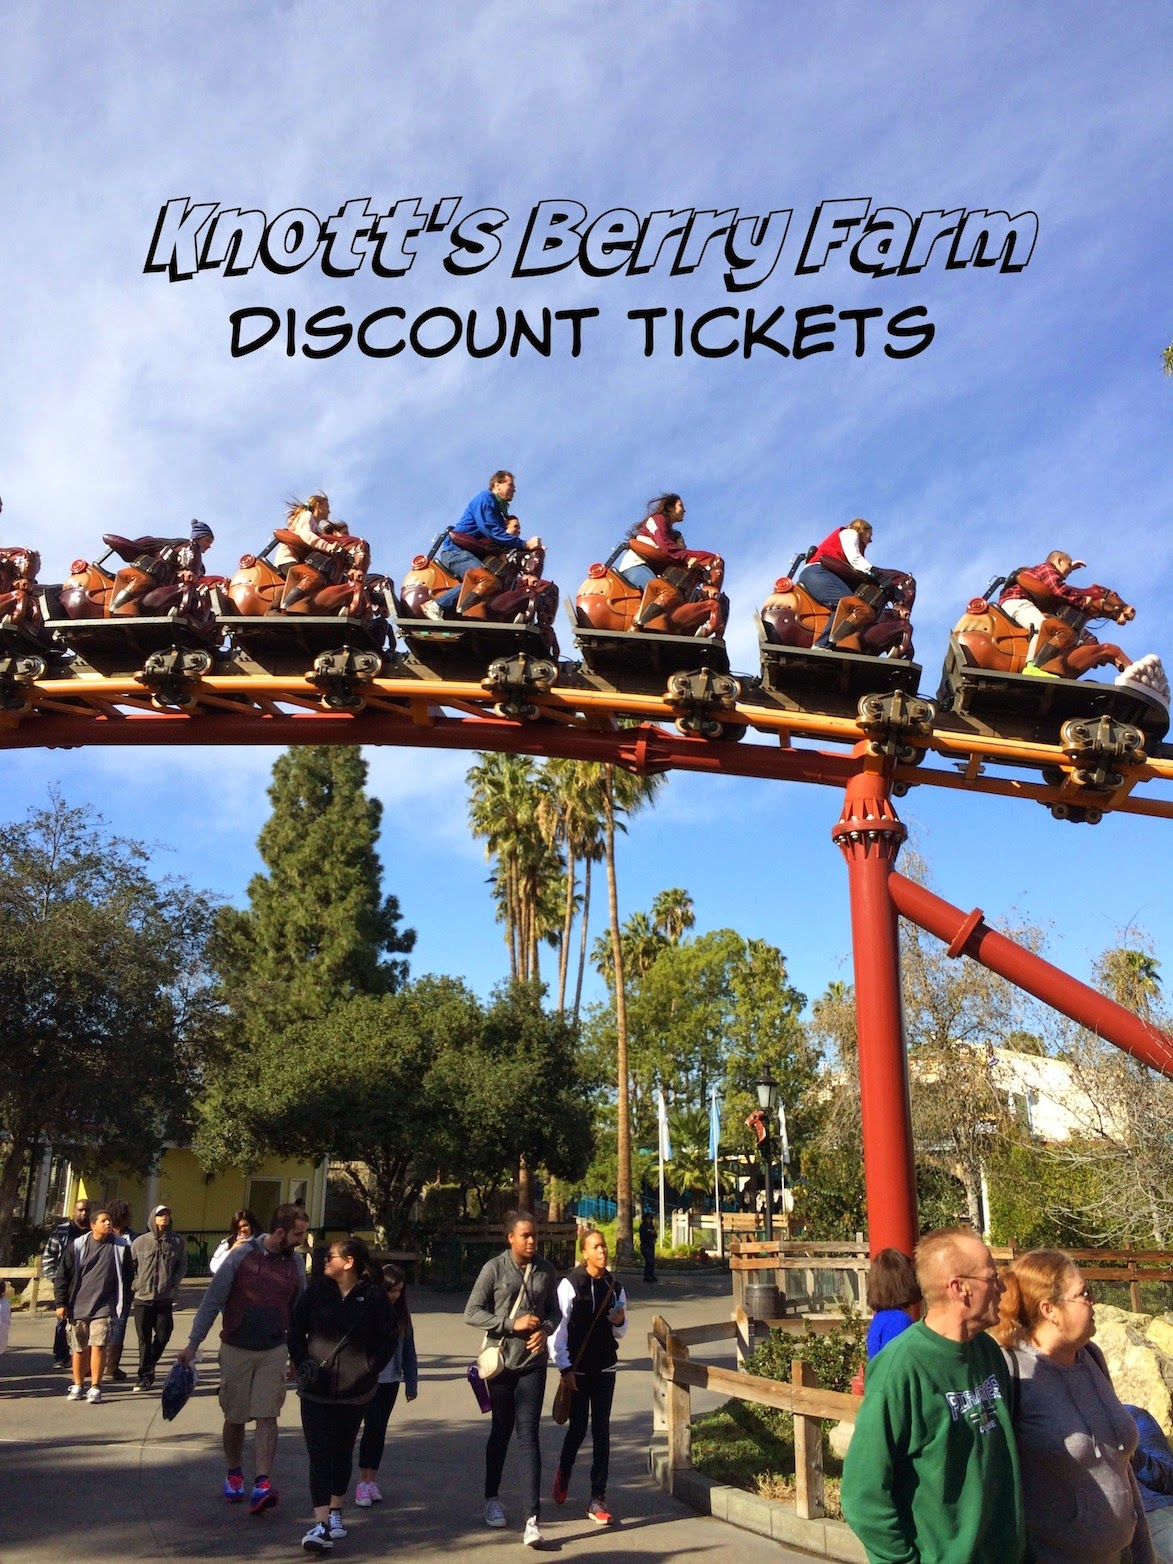 KNOTT'S BERRY FARM DISCOUNT TIX